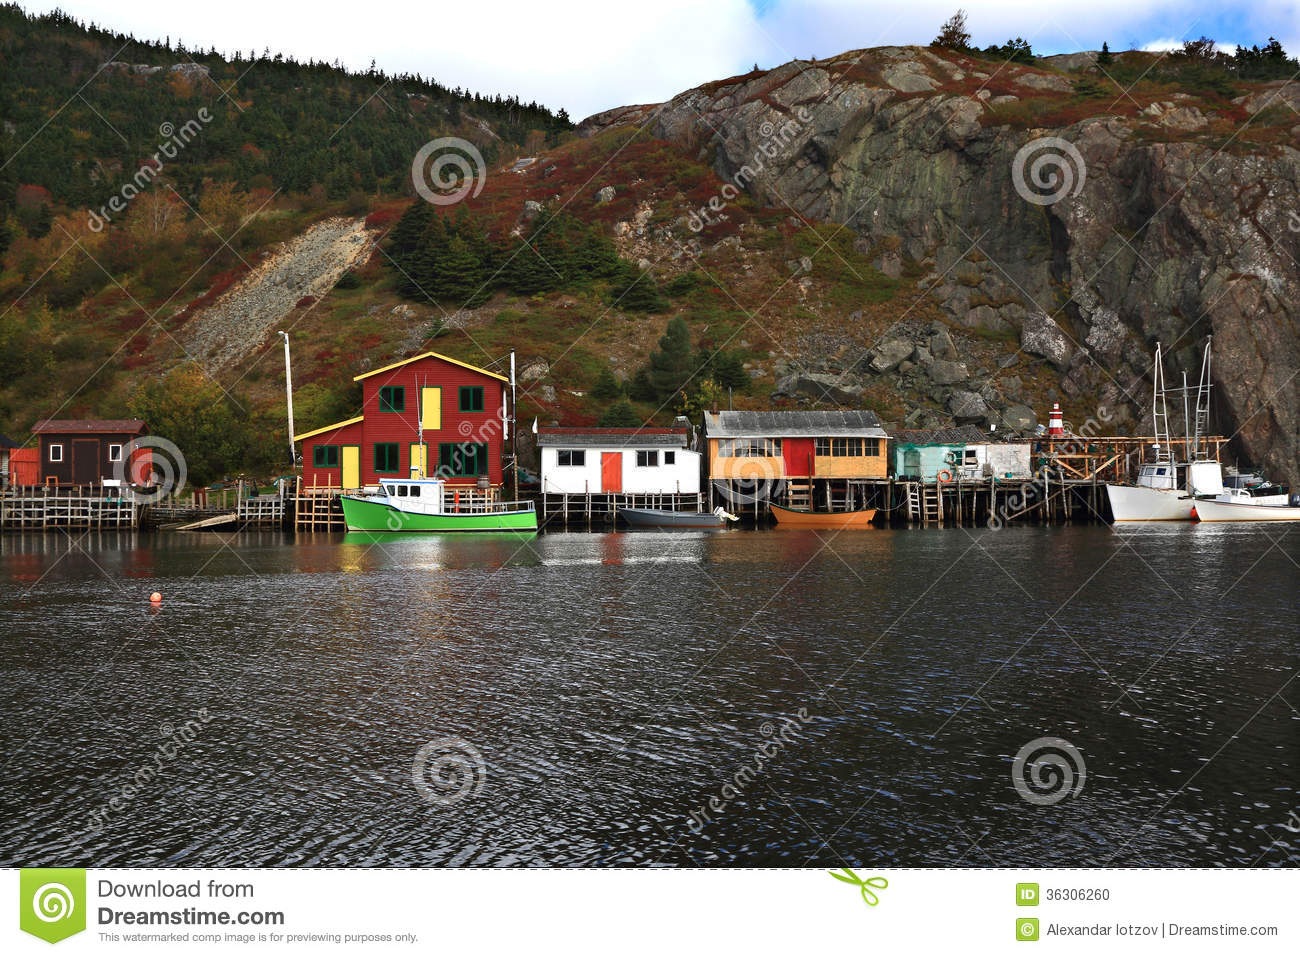 Fishing: Docks, Cabins, Boats On Quidi Vidi Lake Harbor, Newfoundland. Stock Photo - Image: 36306260